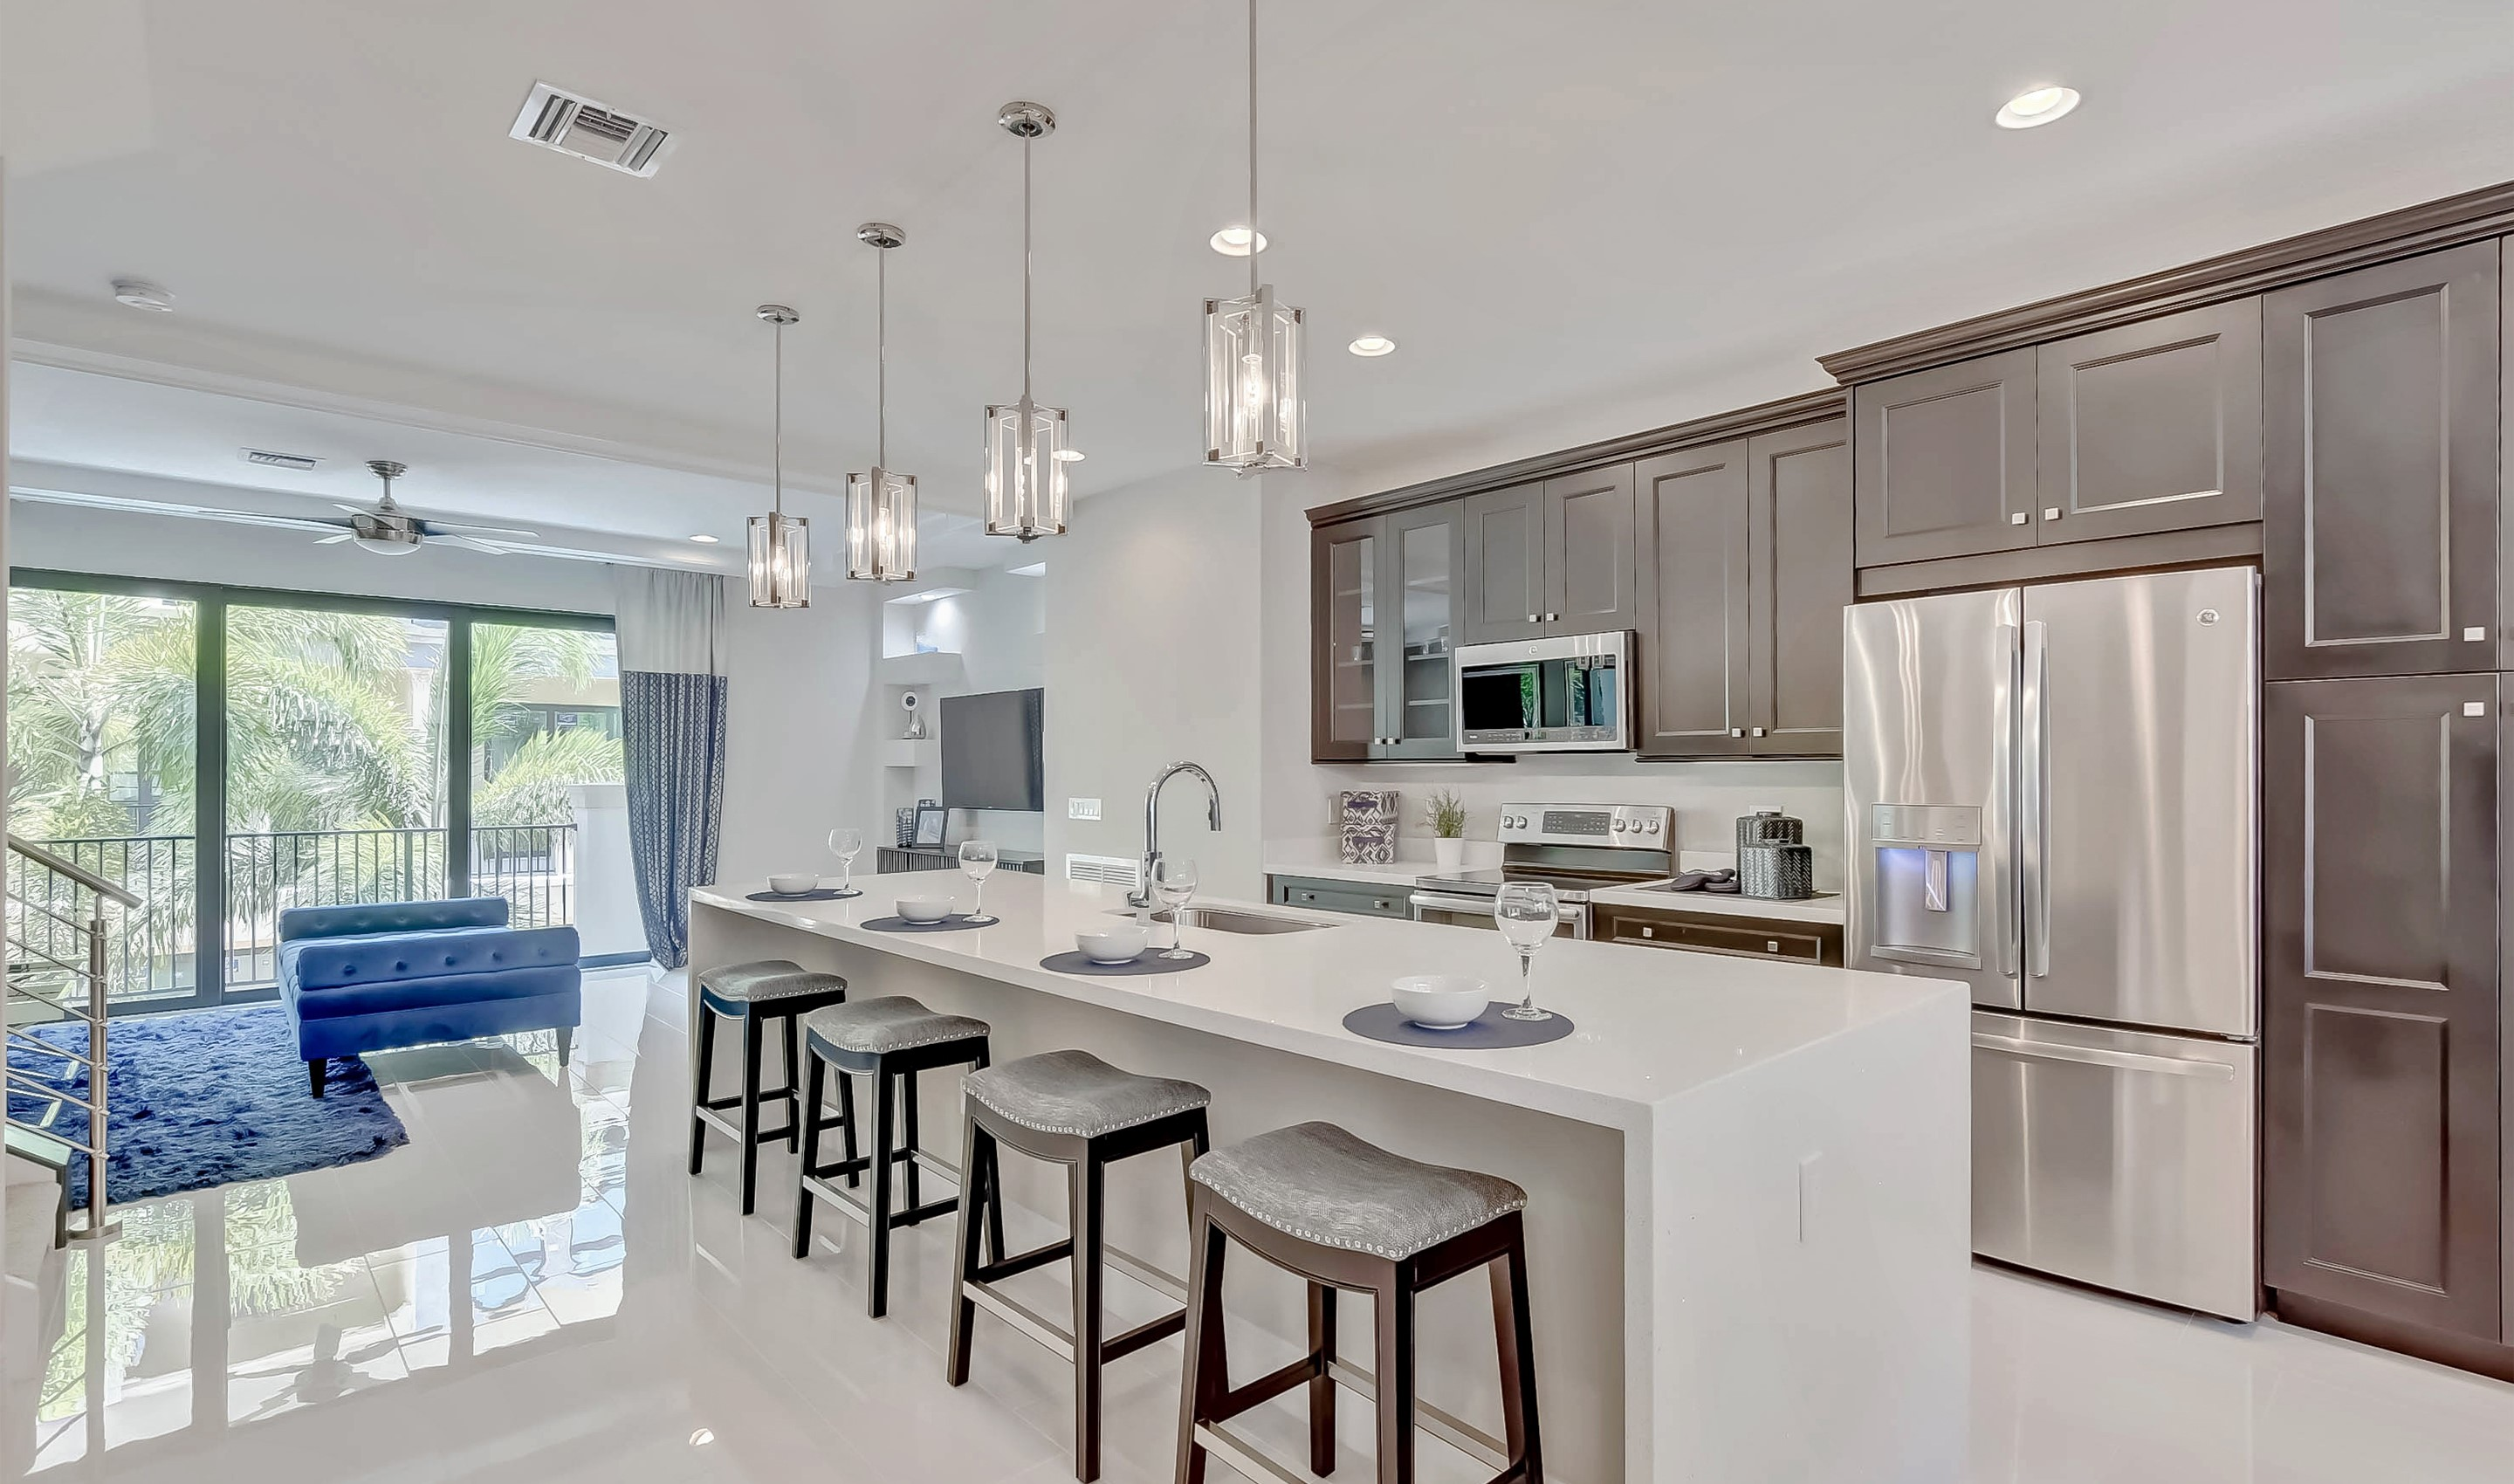 Sprawling island in kitchen